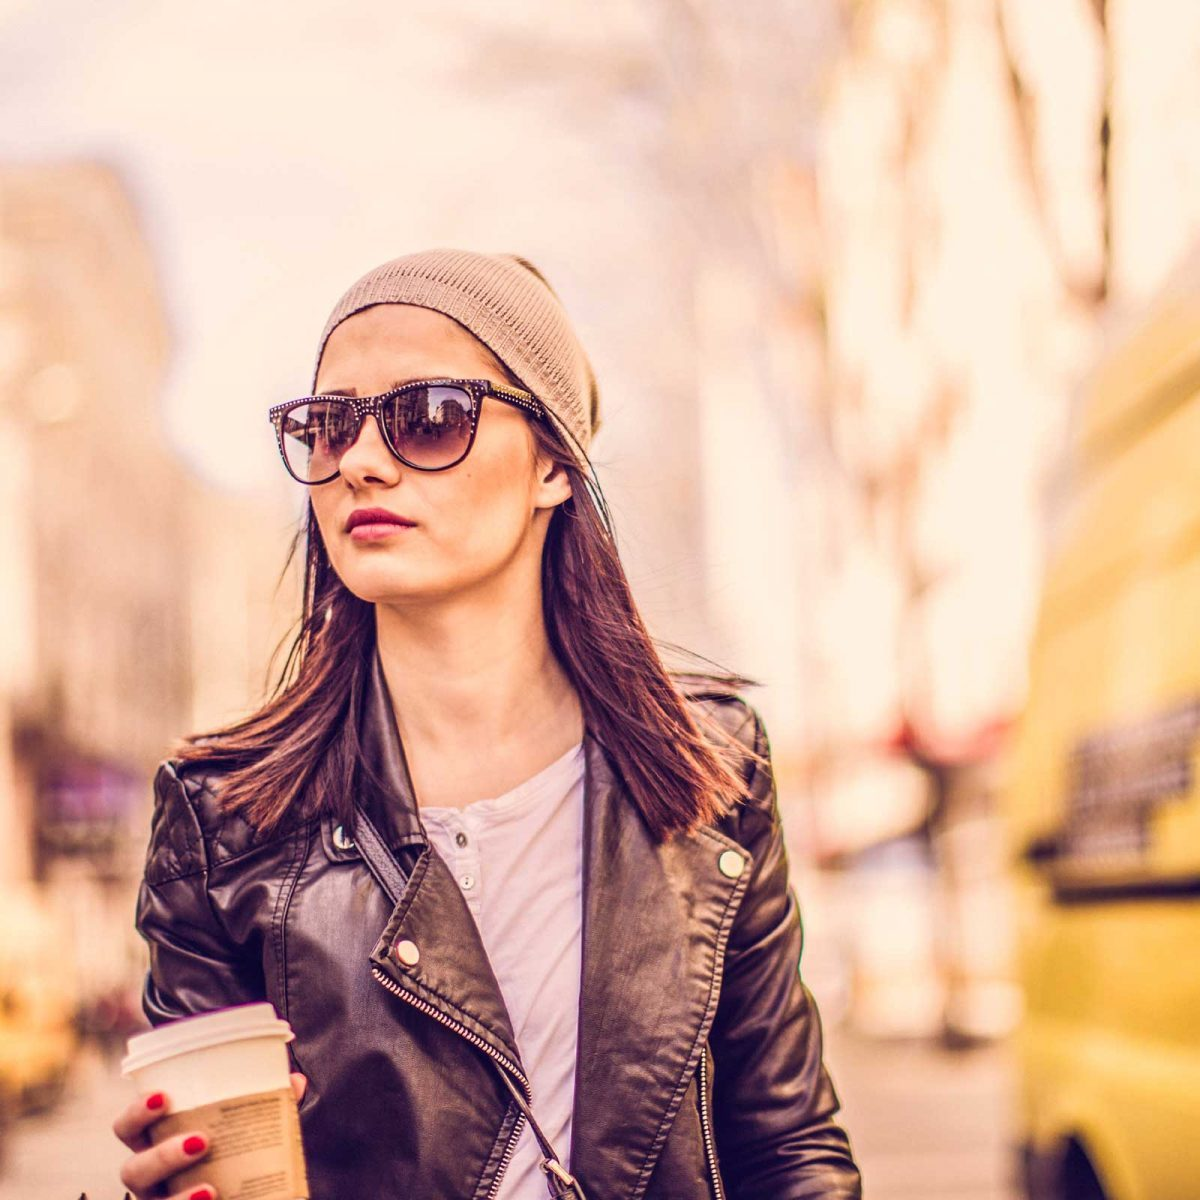 How to Look Expensive: 11 Little Fashion Tips | Reader's Digest